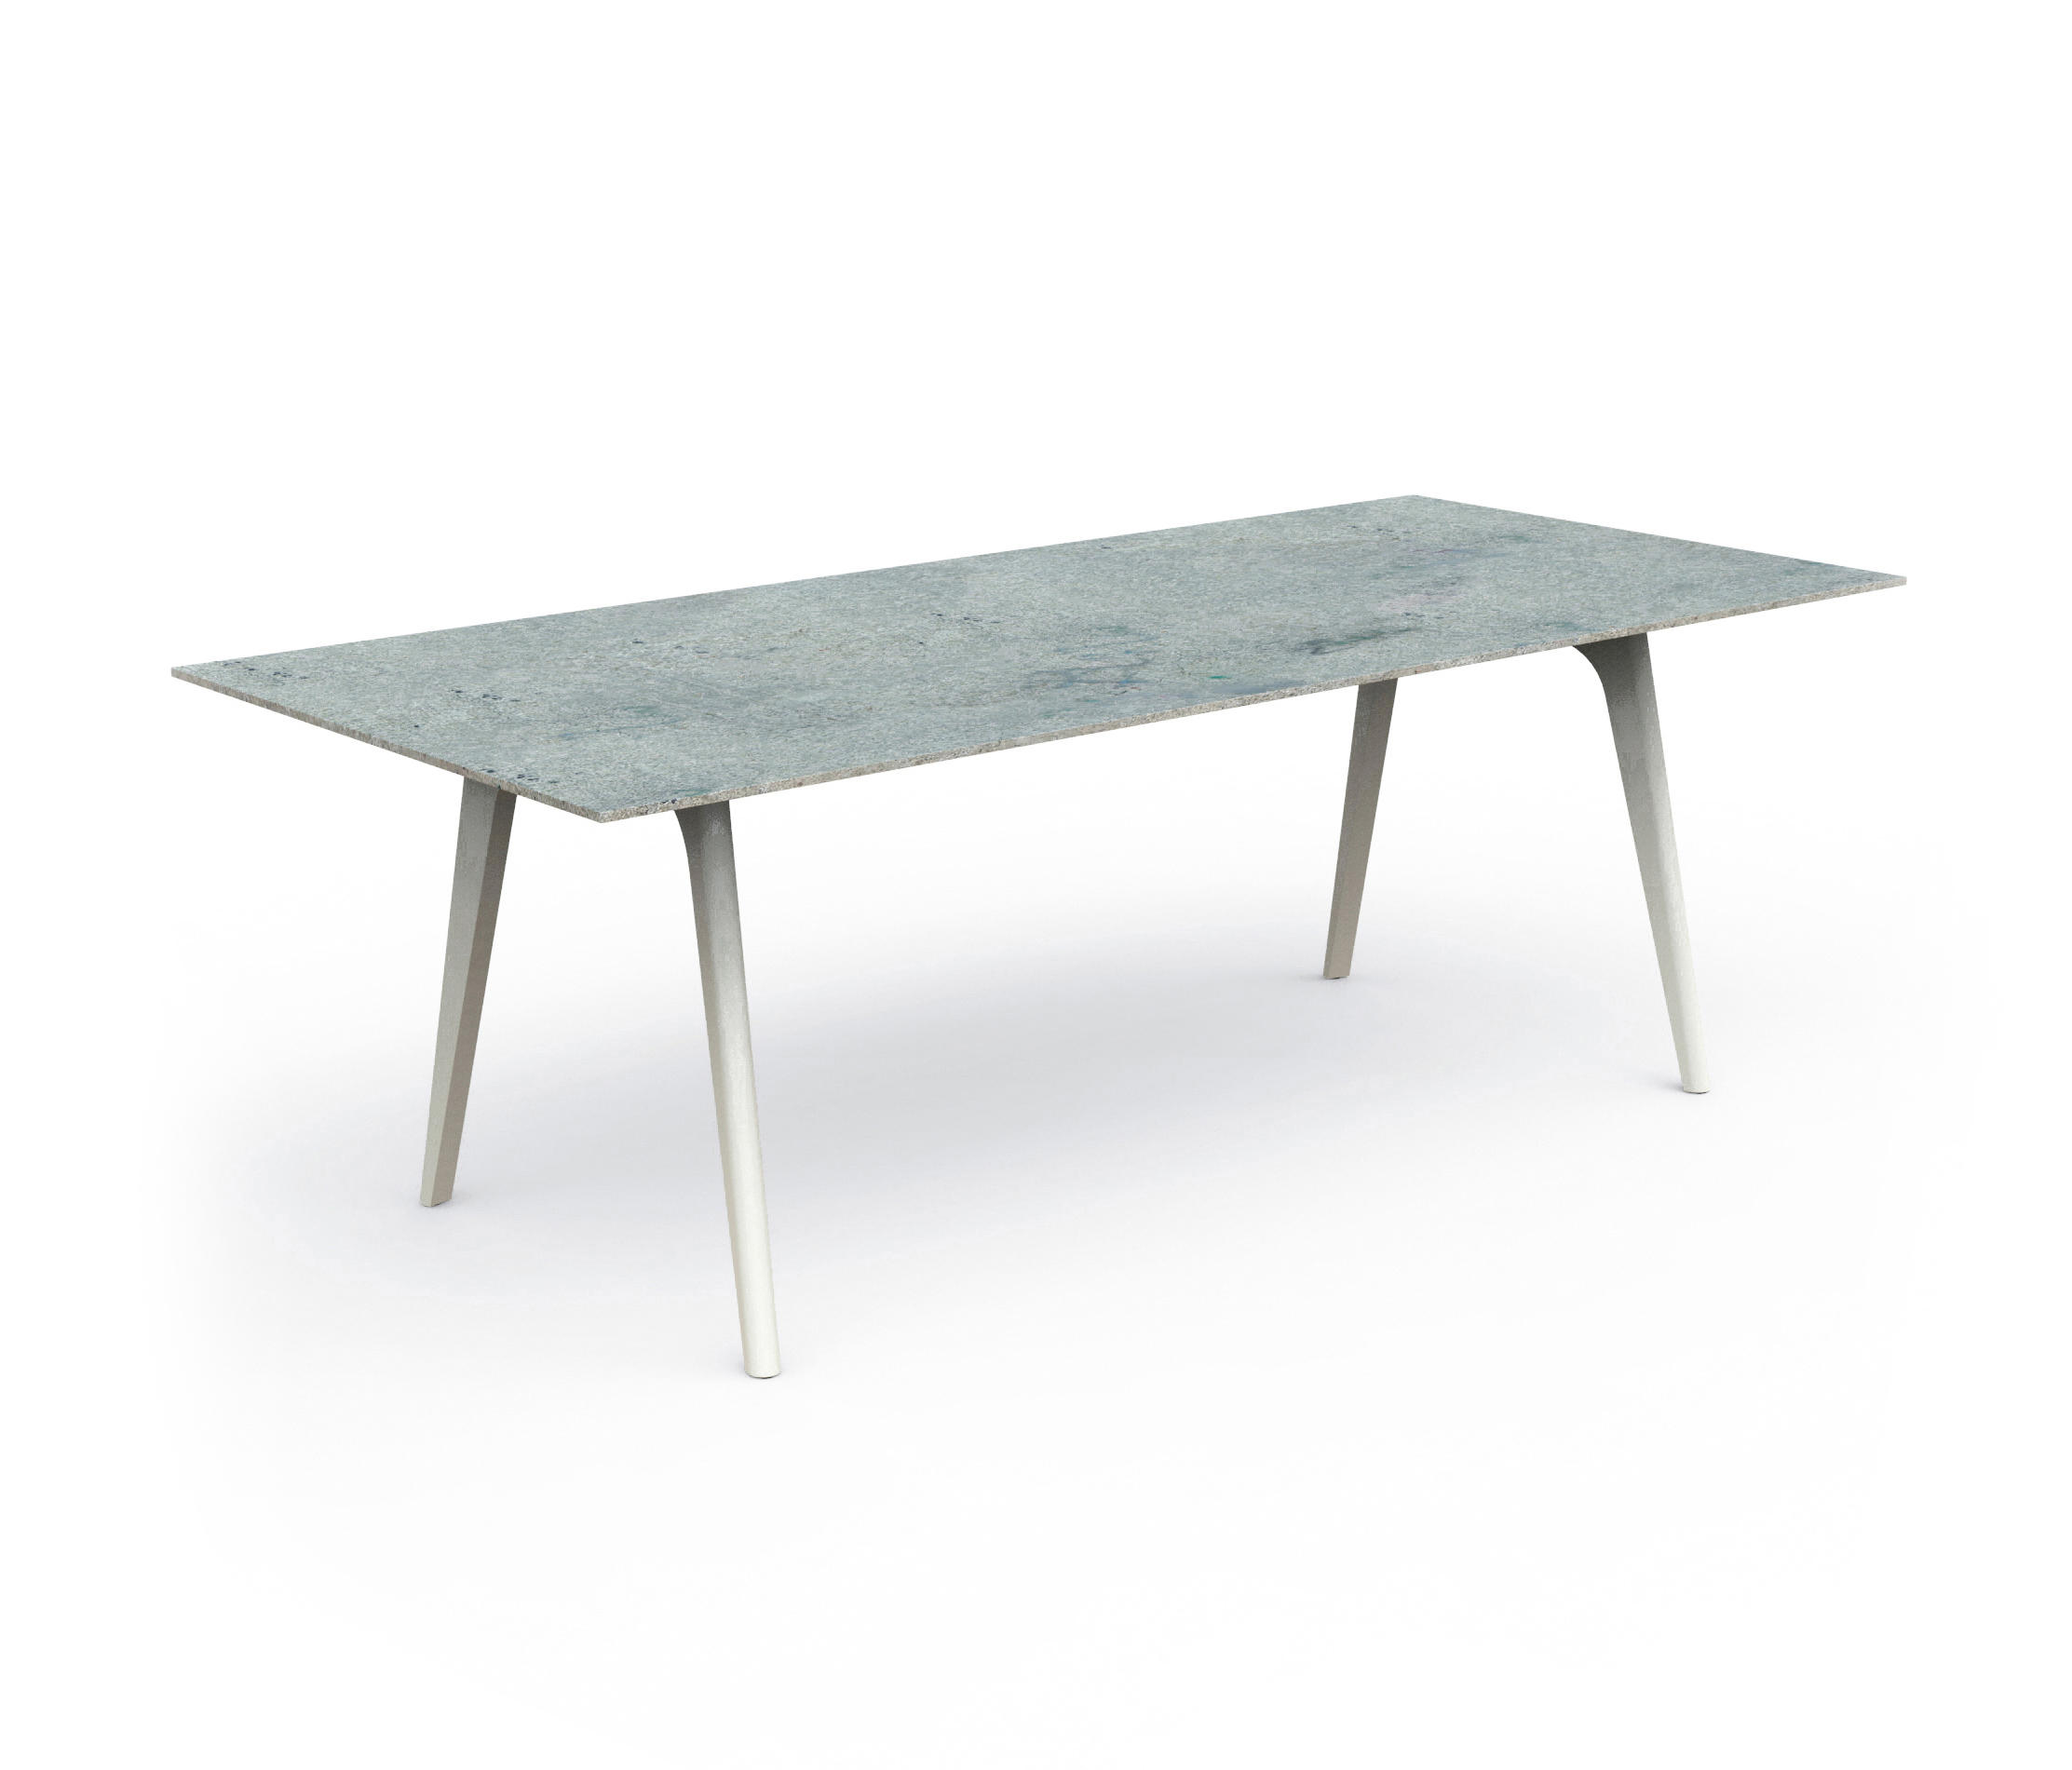 Cleo alu table 220x100 dining tables from talenti for Table 220x100